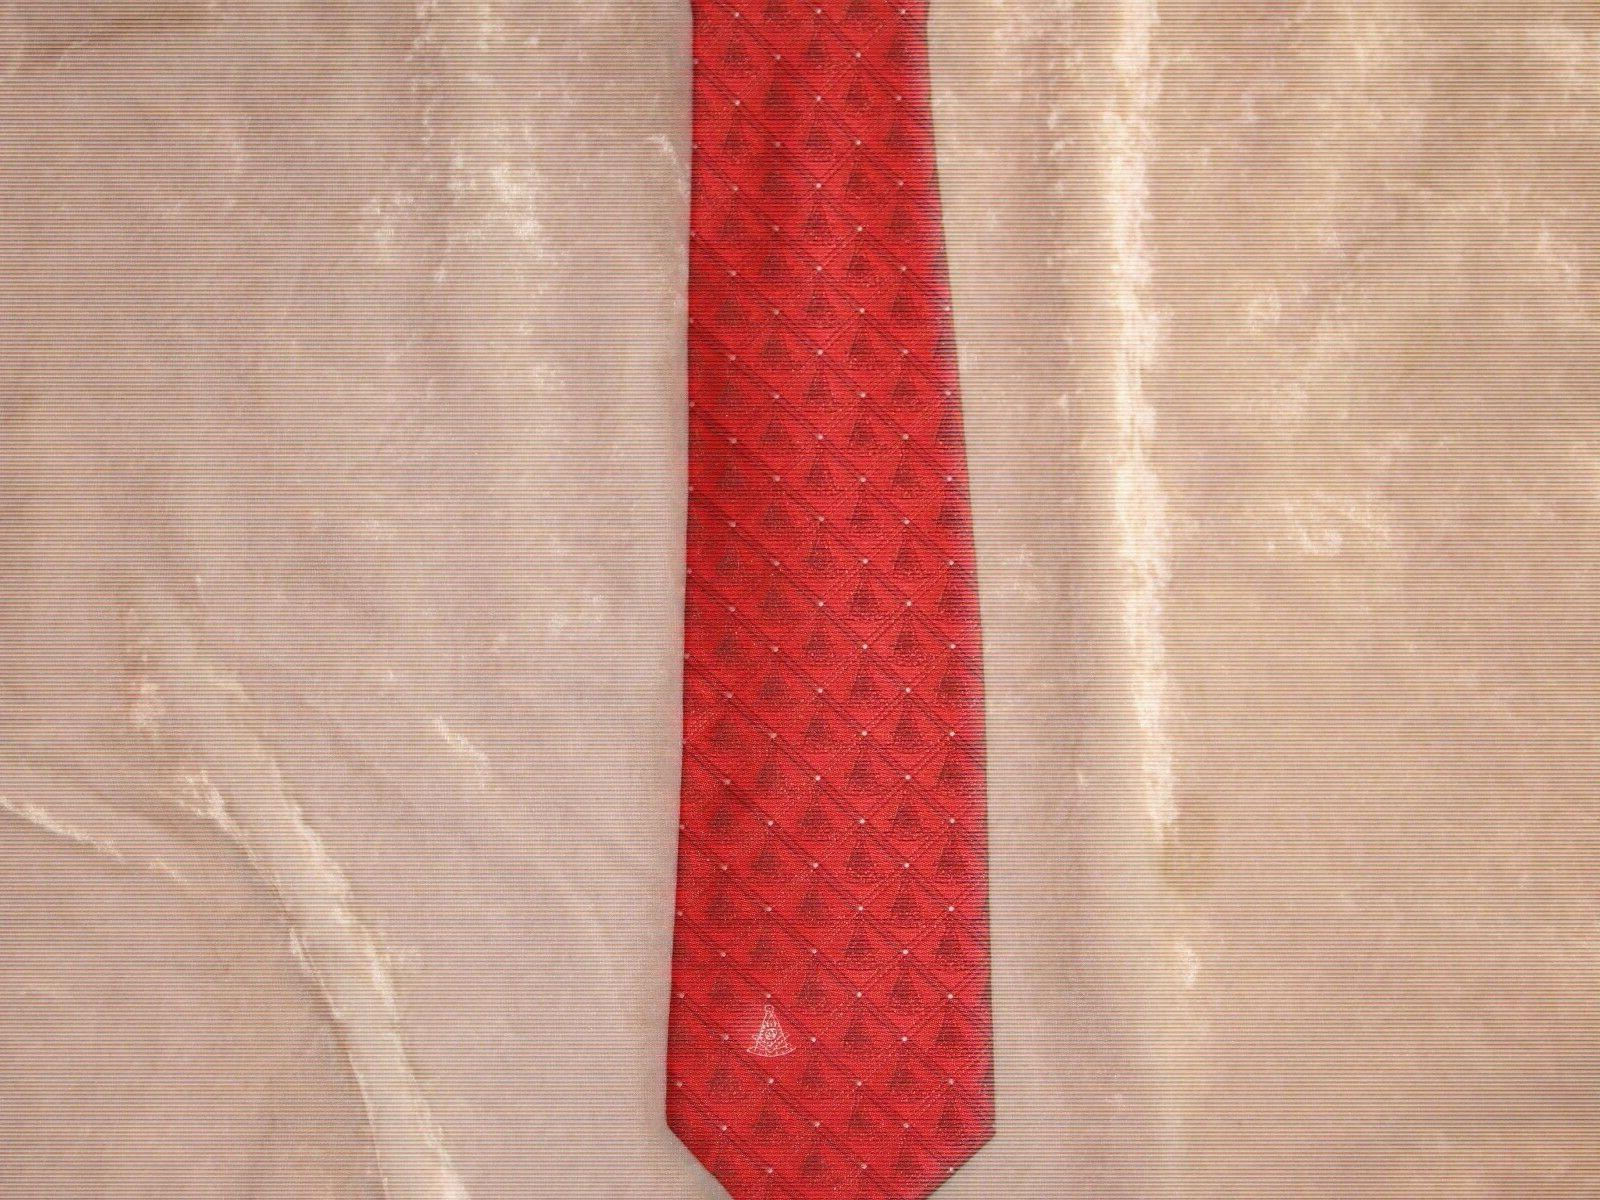 Masonic Past Necktie Diamond Fraternity Suit Extra Long